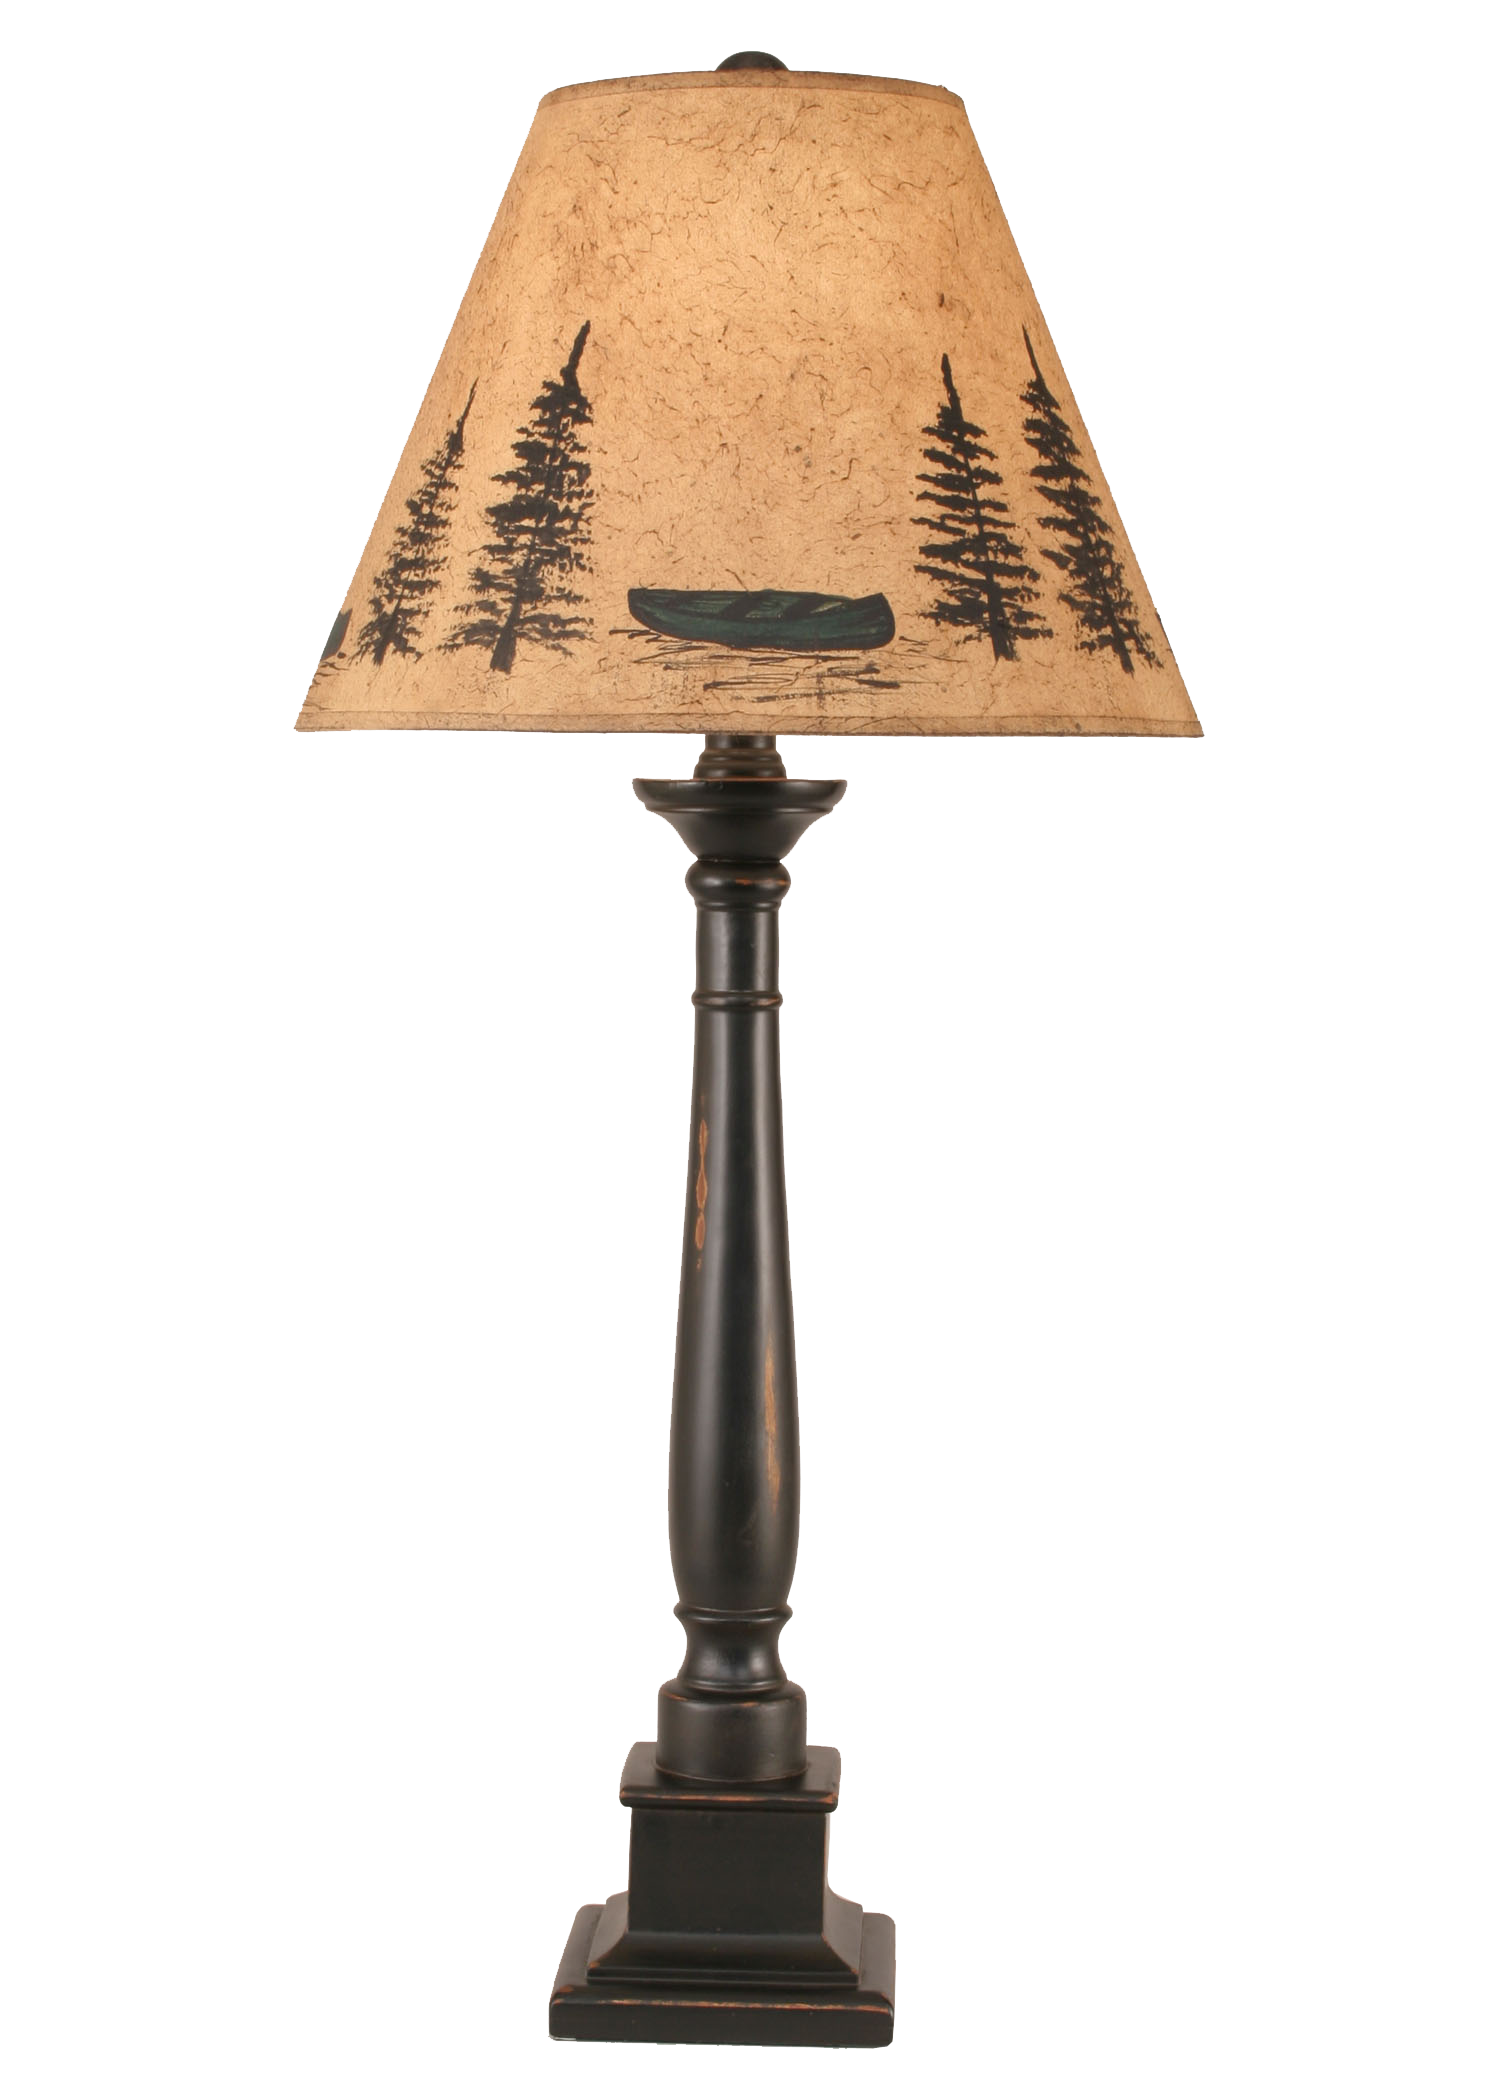 Distressed Black Square Candlestick Table Lamp w/ Canoe Scene Shade - Coast Lamp Shop